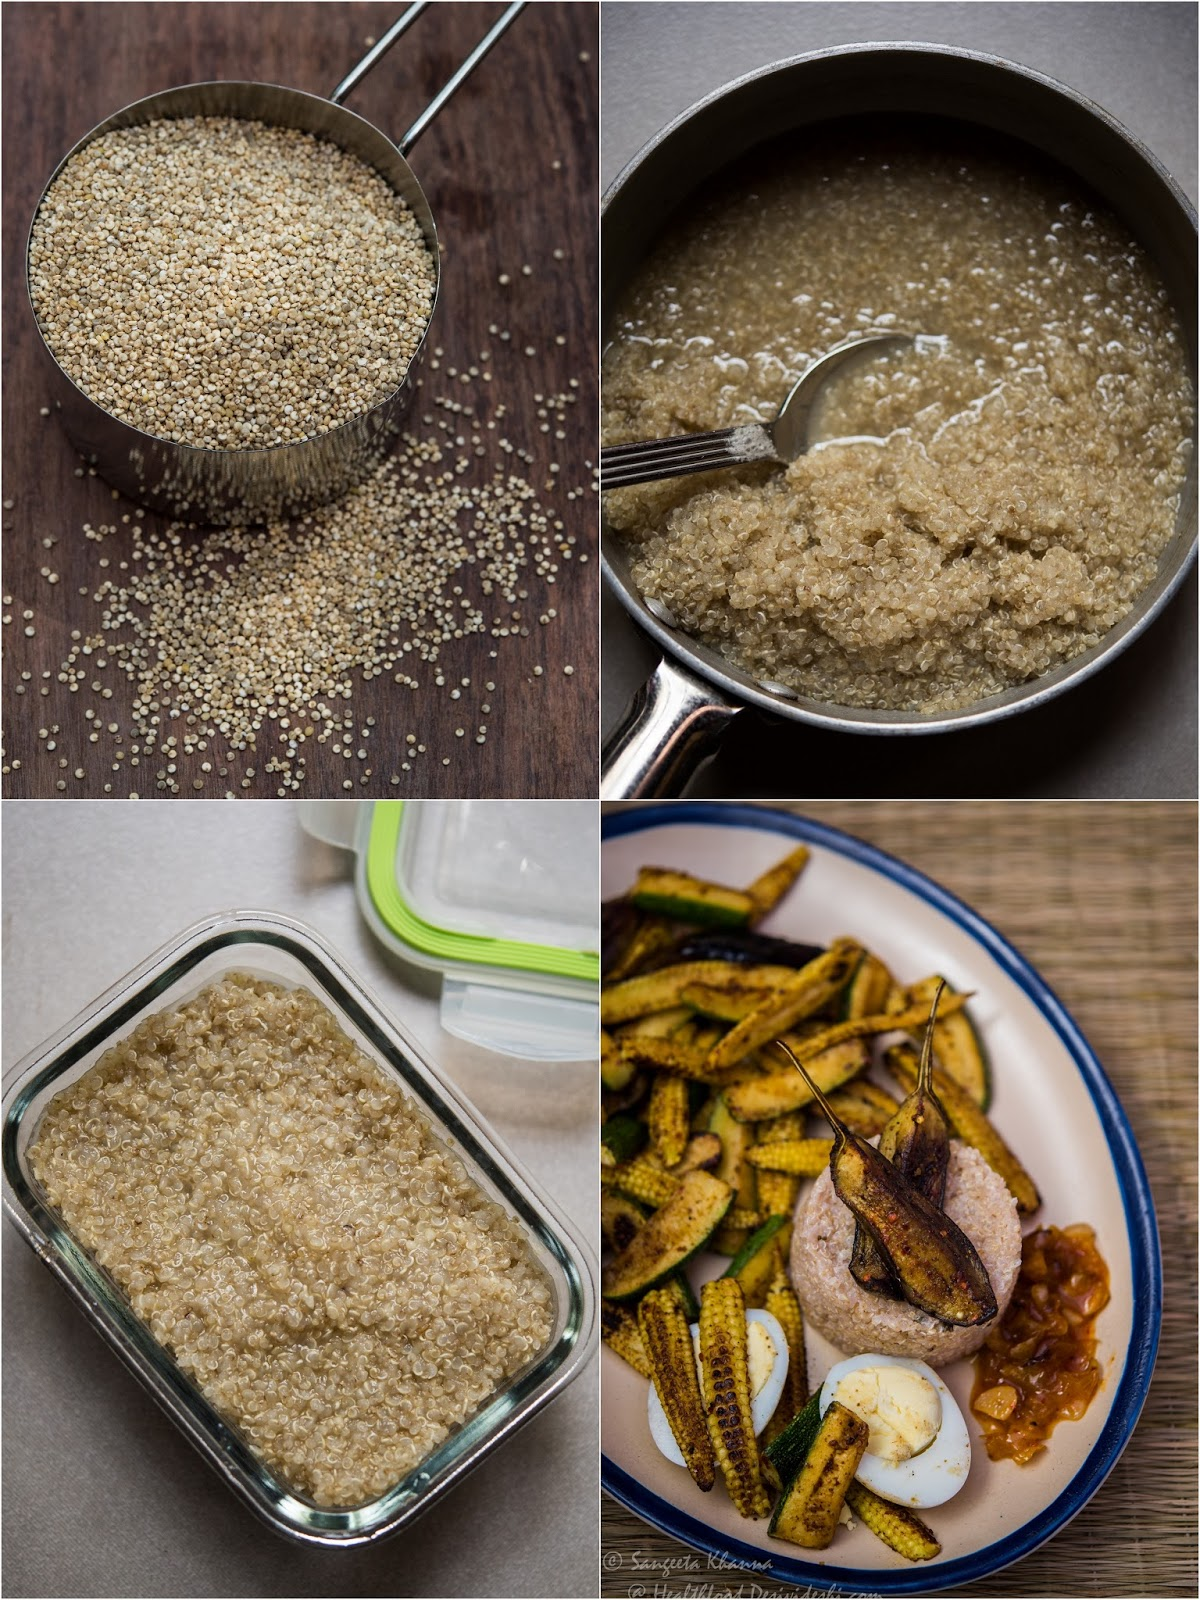 I Normally Cook Half A Cup Of Quinoa With A Hint Of Salt And Keep  Refrigerated For 34 Days Adding This Cooked Quinoa To My Soups And Other  Meals Is So